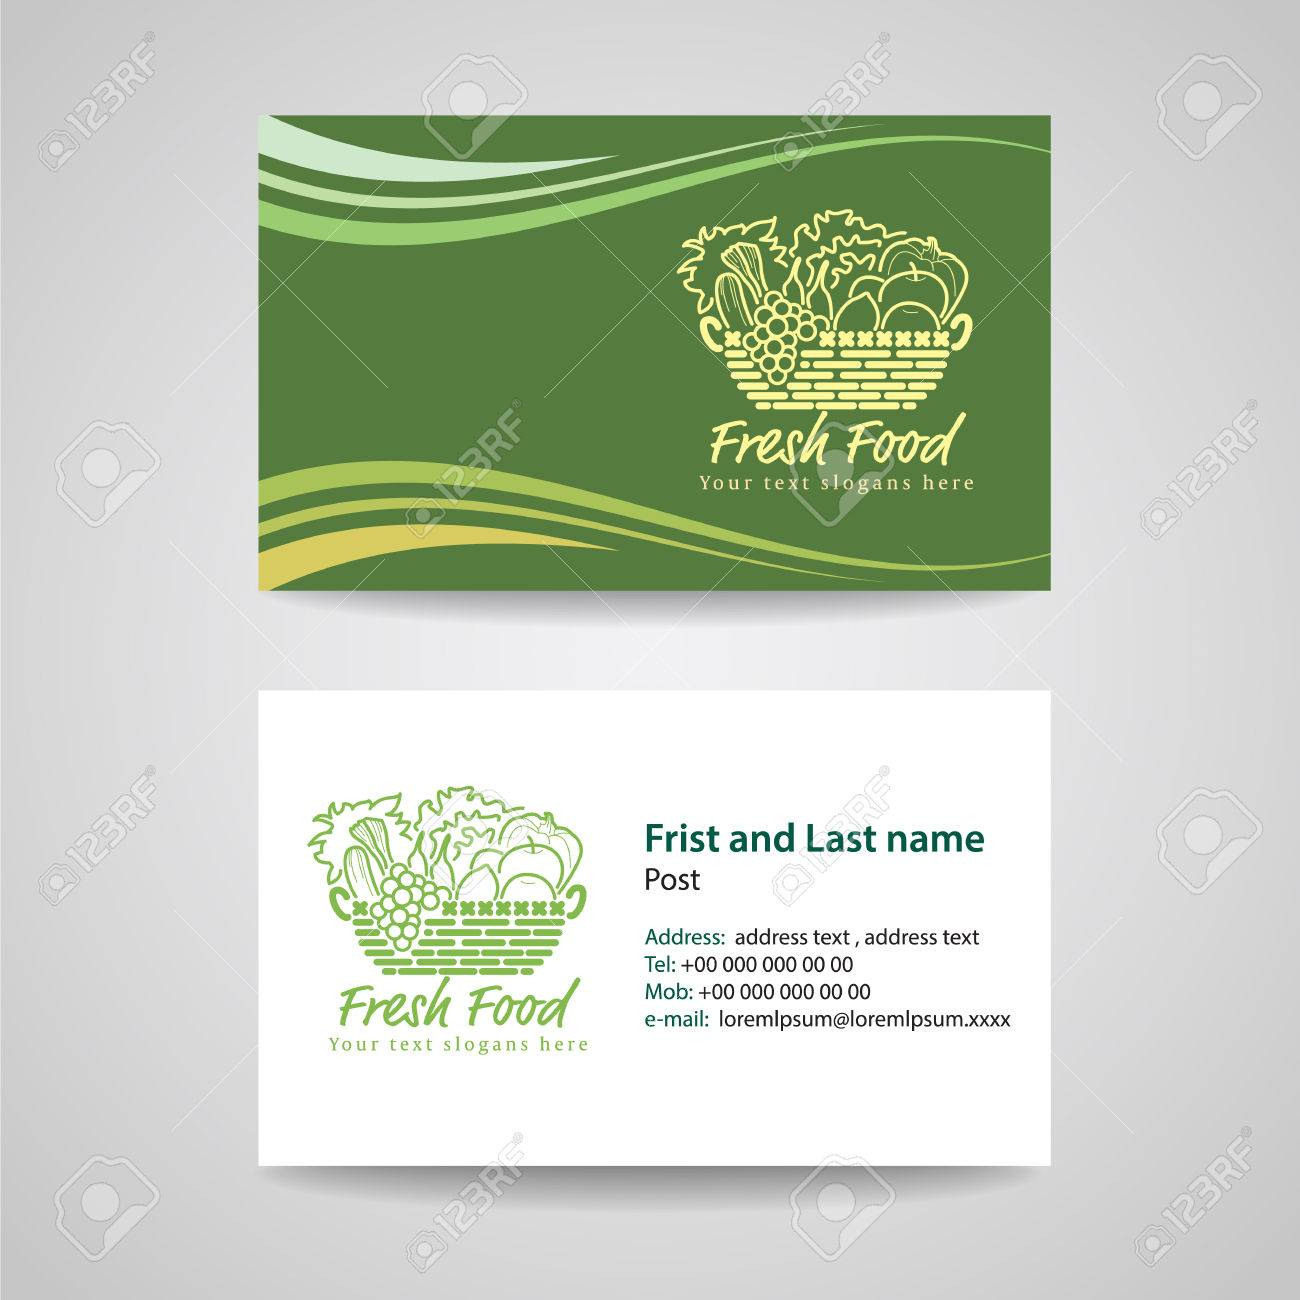 Cool Geographics Business Cards Templates Photos - Business Card ...